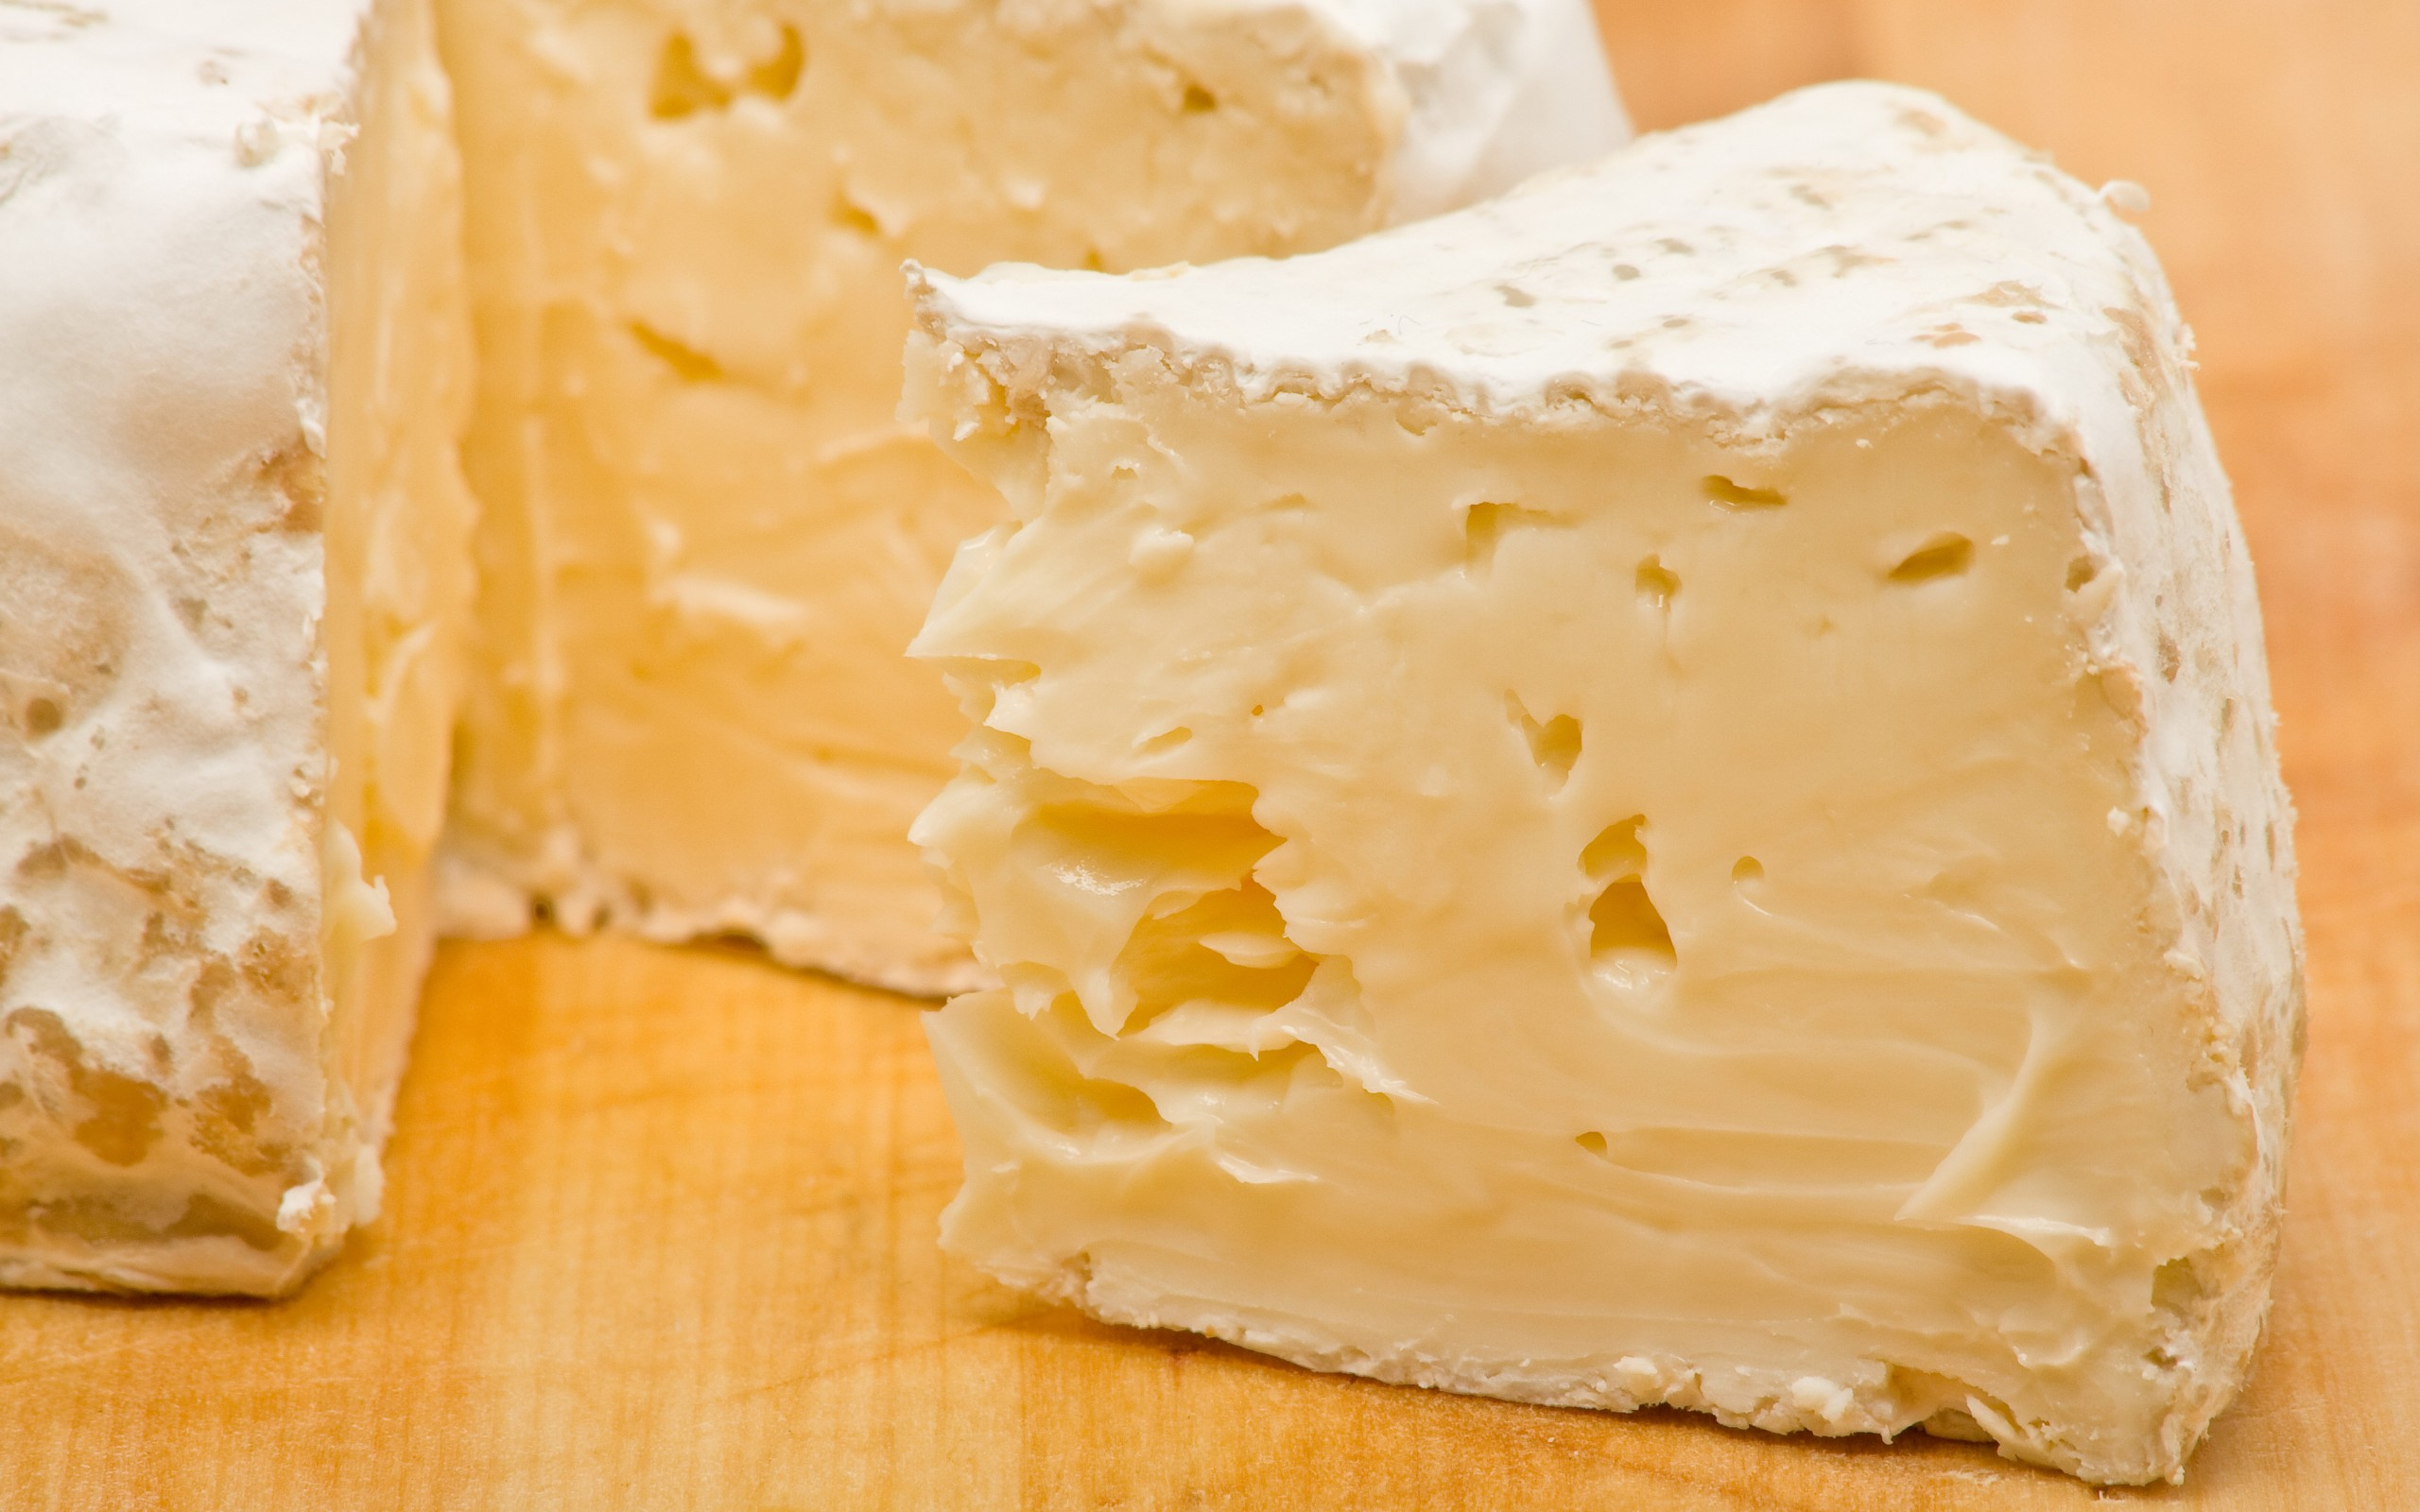 cheese food wallpaper background 51358